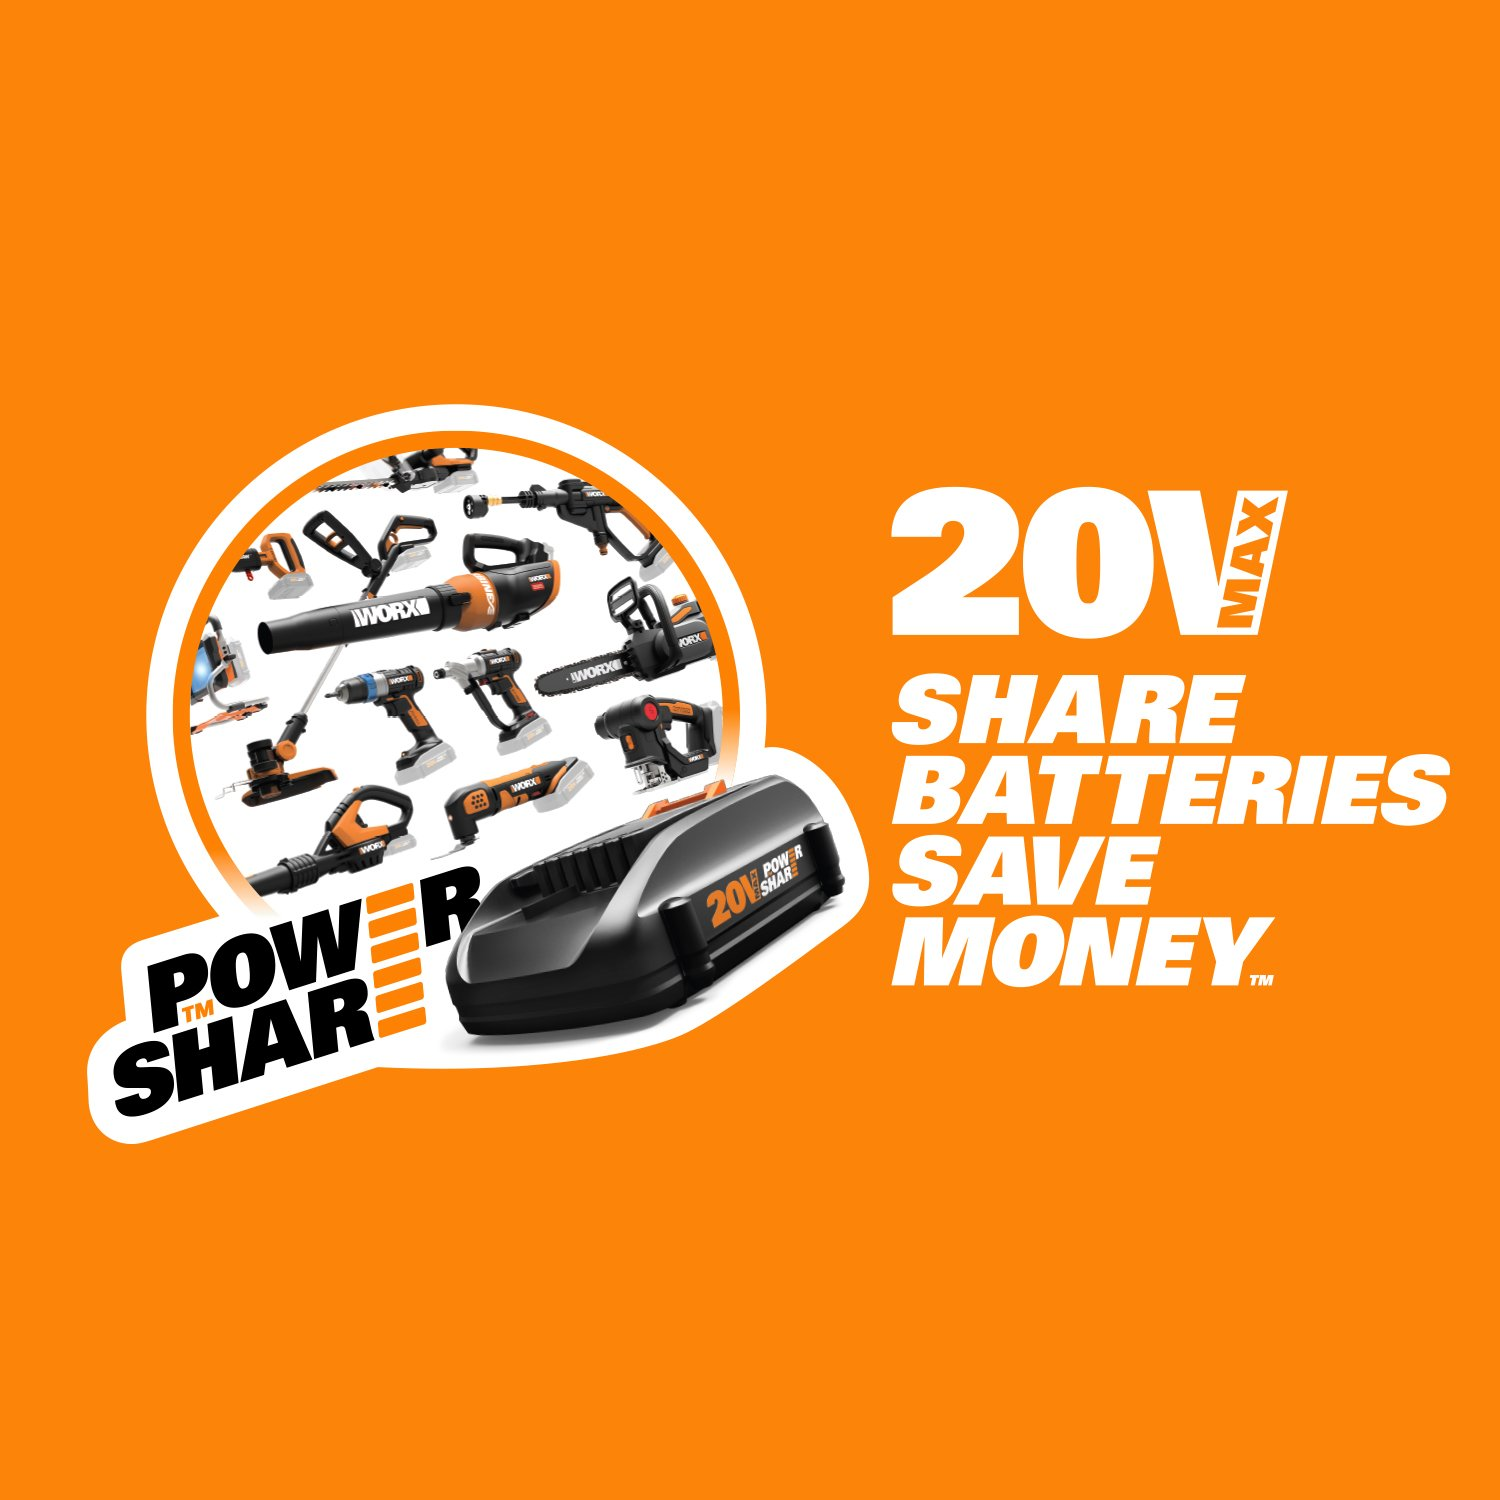 Worx AIR 20V 2.0AH Battery + Charger Included Multi-Purpose Blower/Sweeper/Cleaner with 120 MPH/80 CFM Output, 3.5 lb Weight, 20V Battery PowerShare Platform, with Accessories - WG545.1